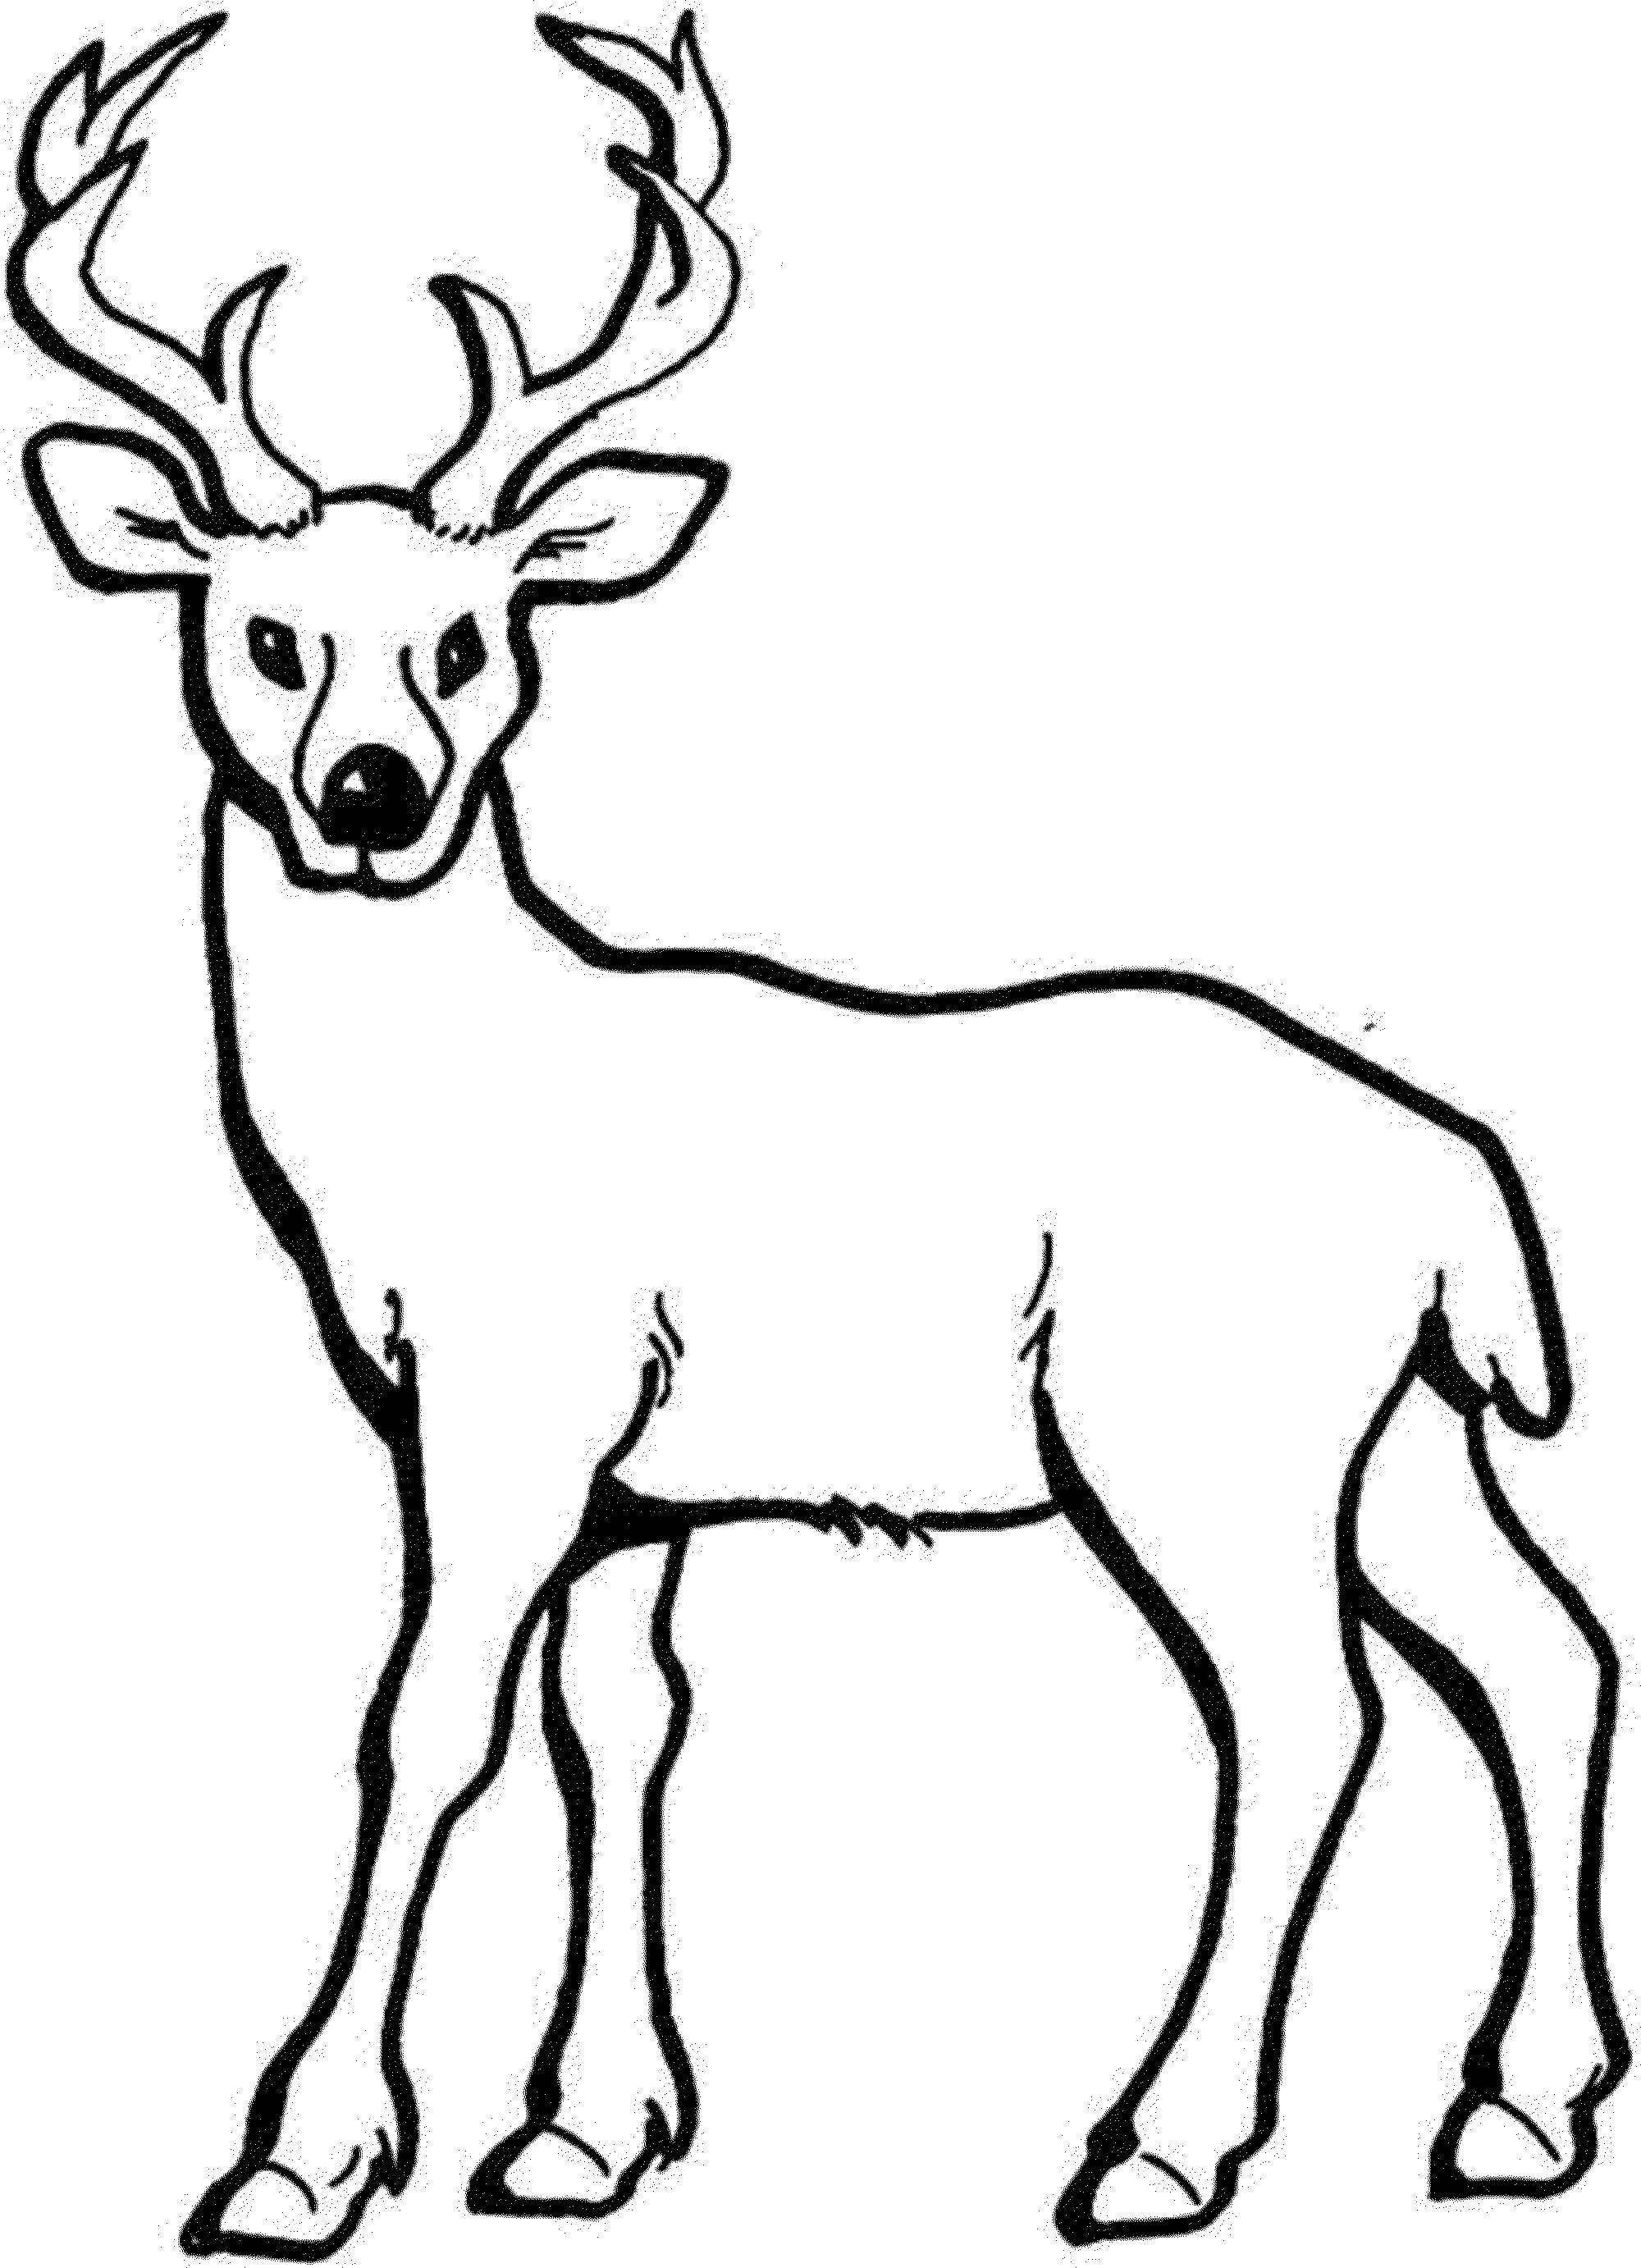 Deer Coloring Pages At Getdrawings Free Download